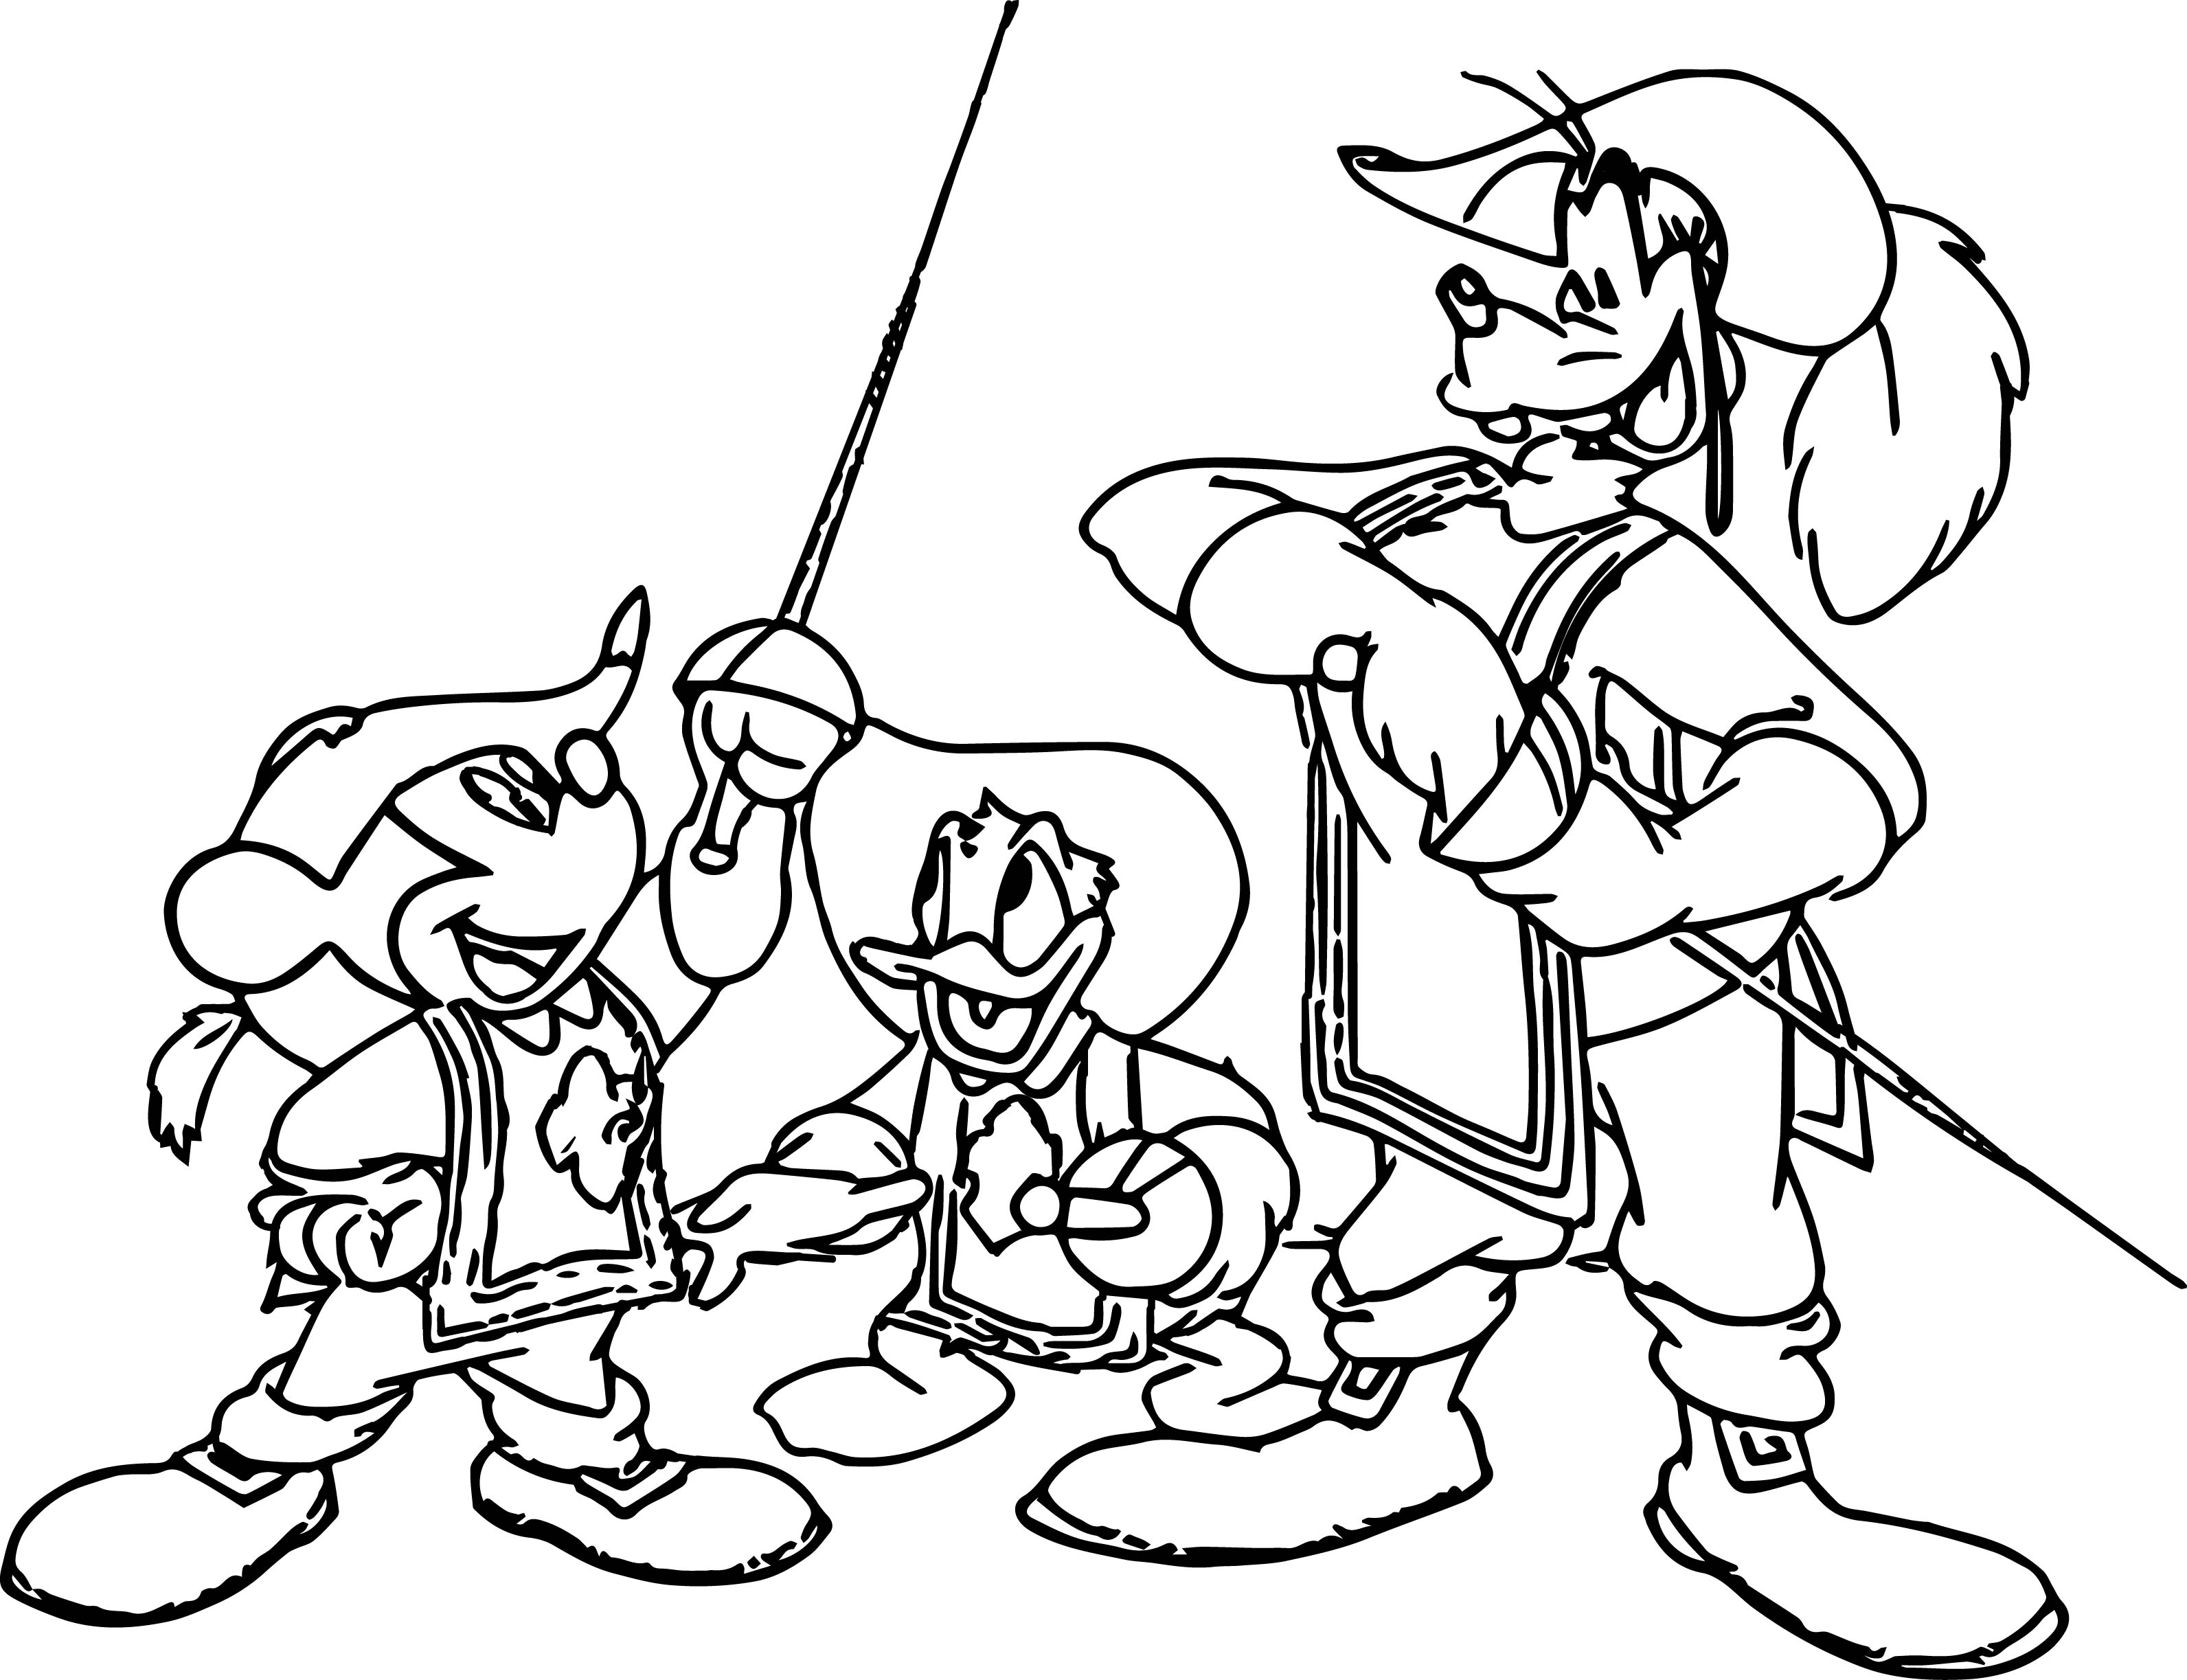 Disney Lady And The Tramp Coloring Book Pages